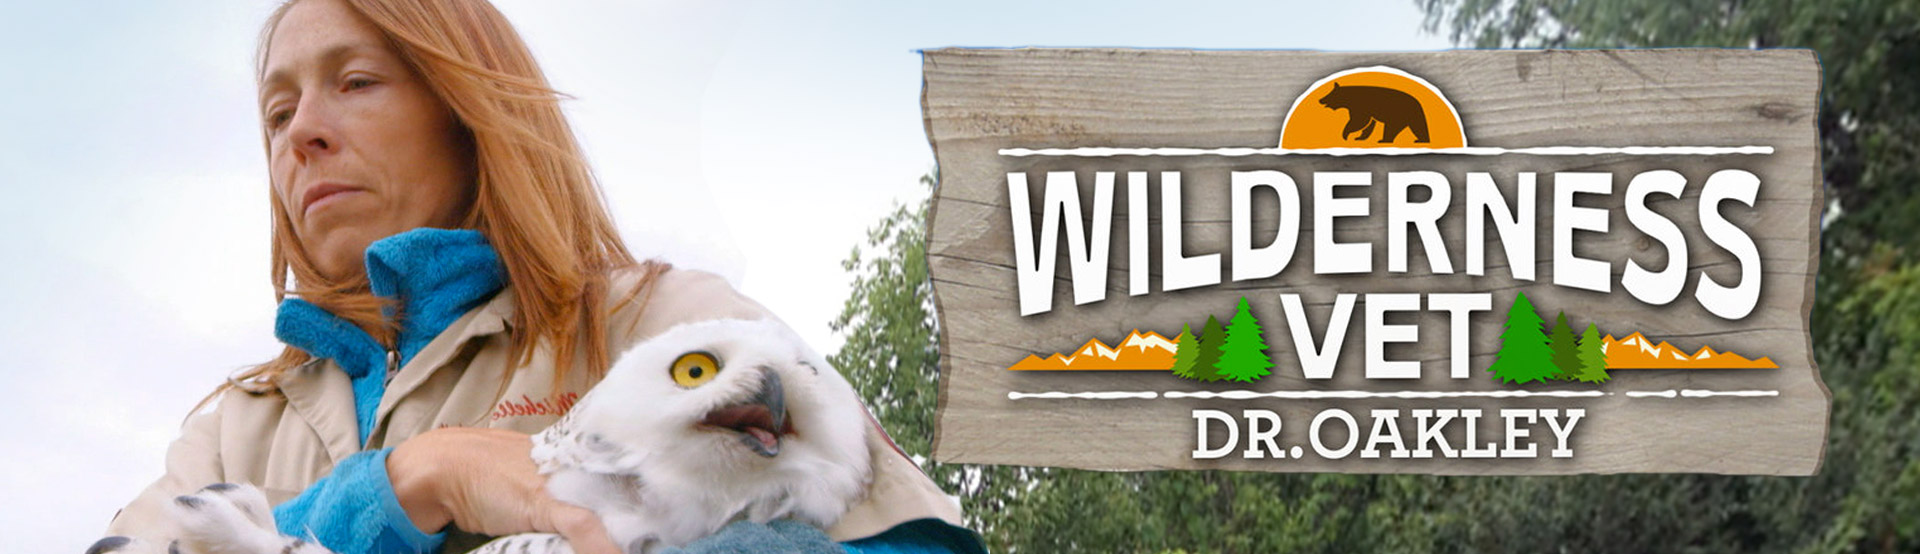 Banner image for Wilderness Vet